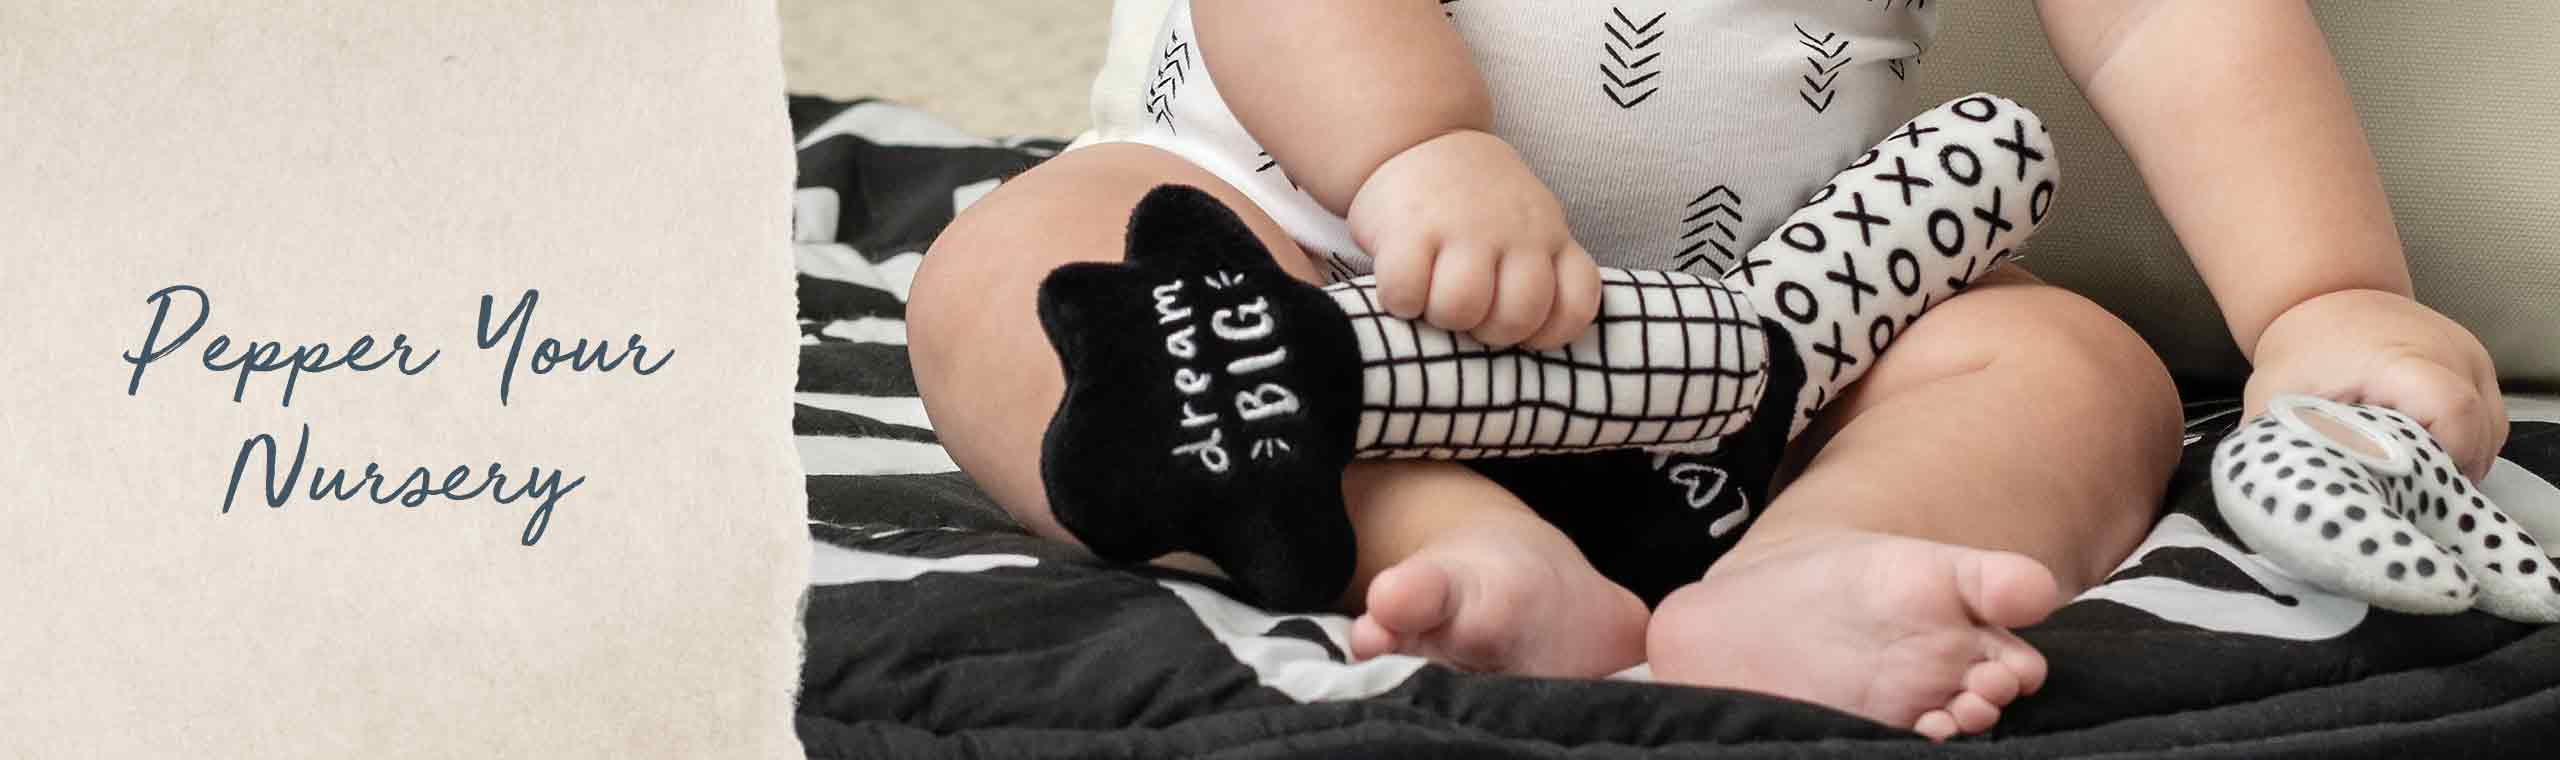 Pepper your Nursery! a baby wearing black and white socks, clothes and playing with a blank and white toy